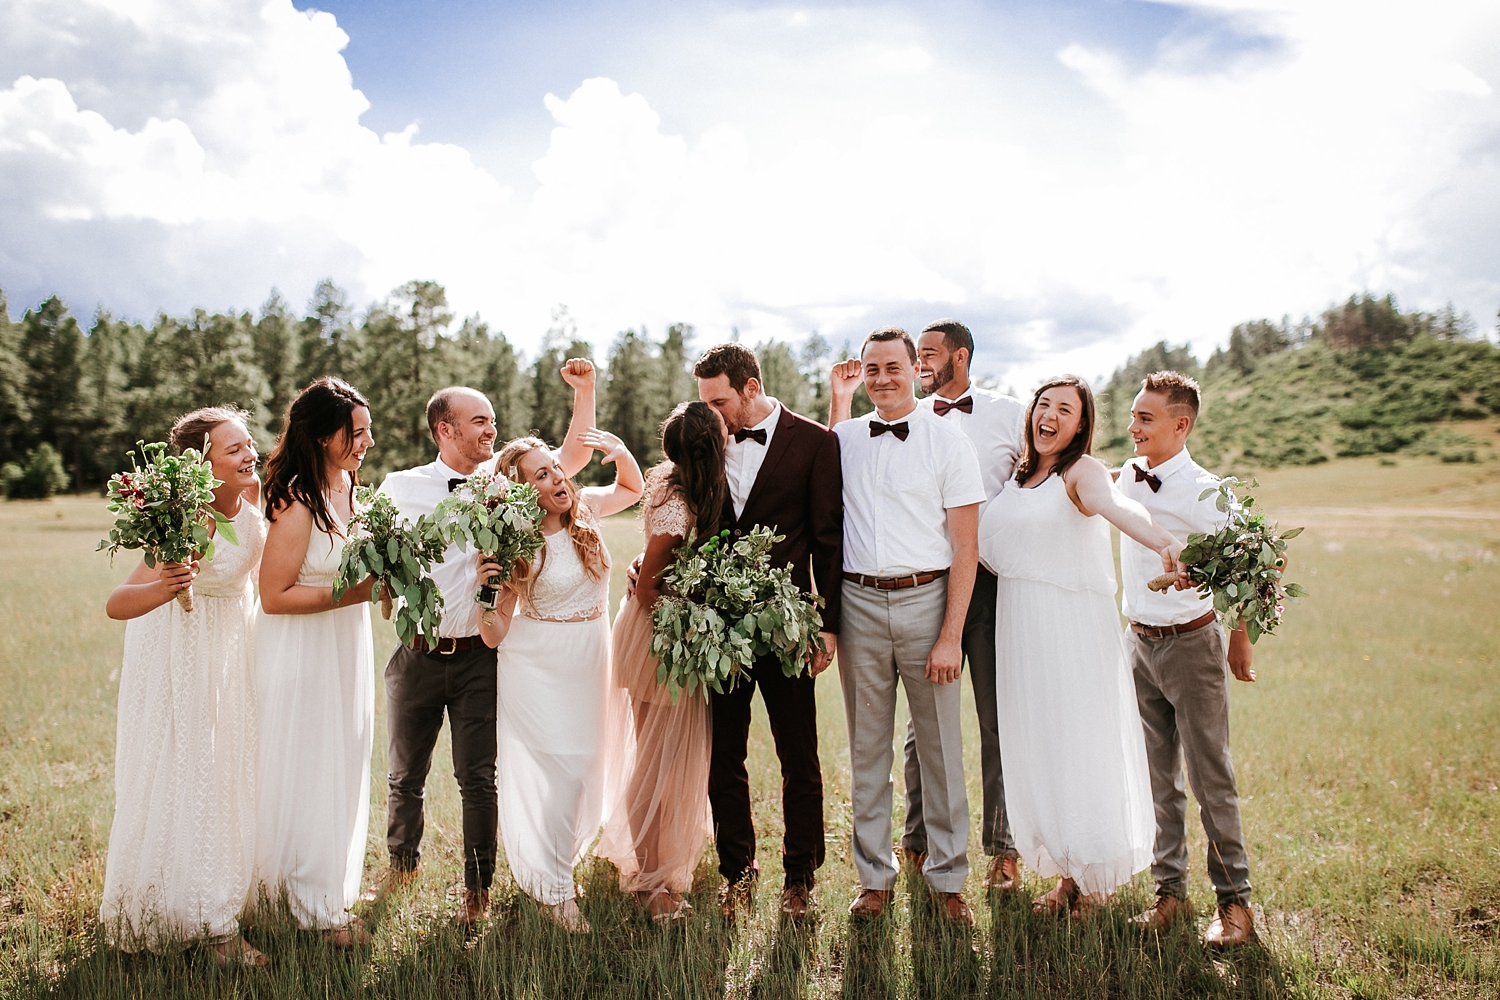 Alicia+lucia+photography+-+albuquerque+wedding+photographer+-+santa+fe+wedding+photography+-+new+mexico+wedding+photographer+-+pagosa+springs+wedding+-+destination+wedding_0035.jpg